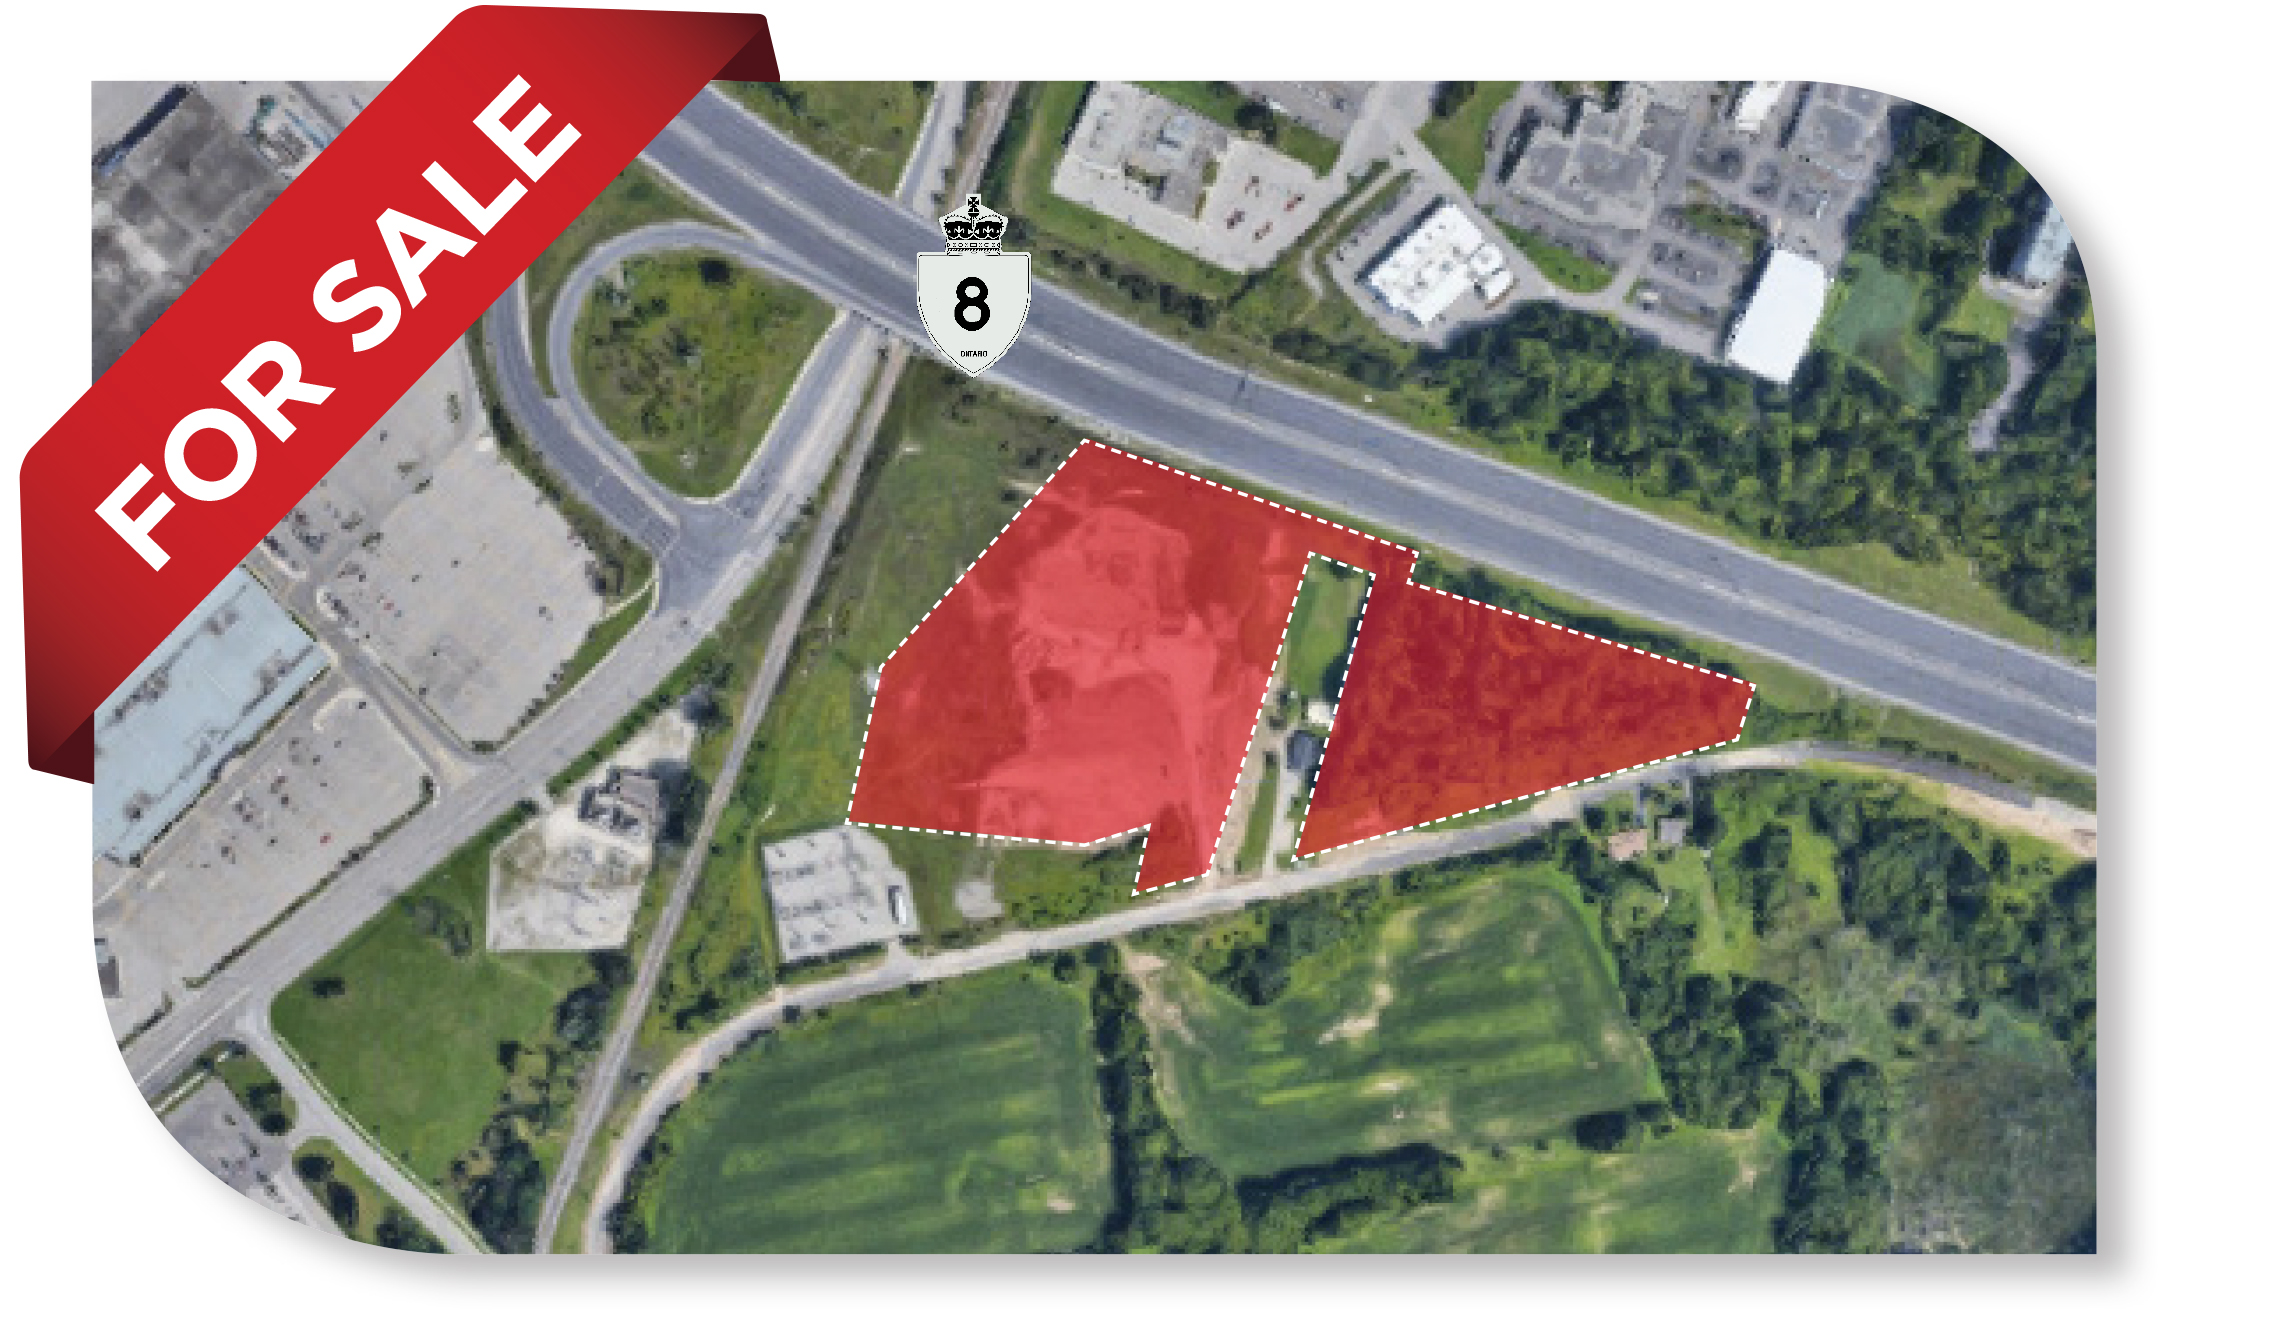 9.47 Acres of Redevelopment Land